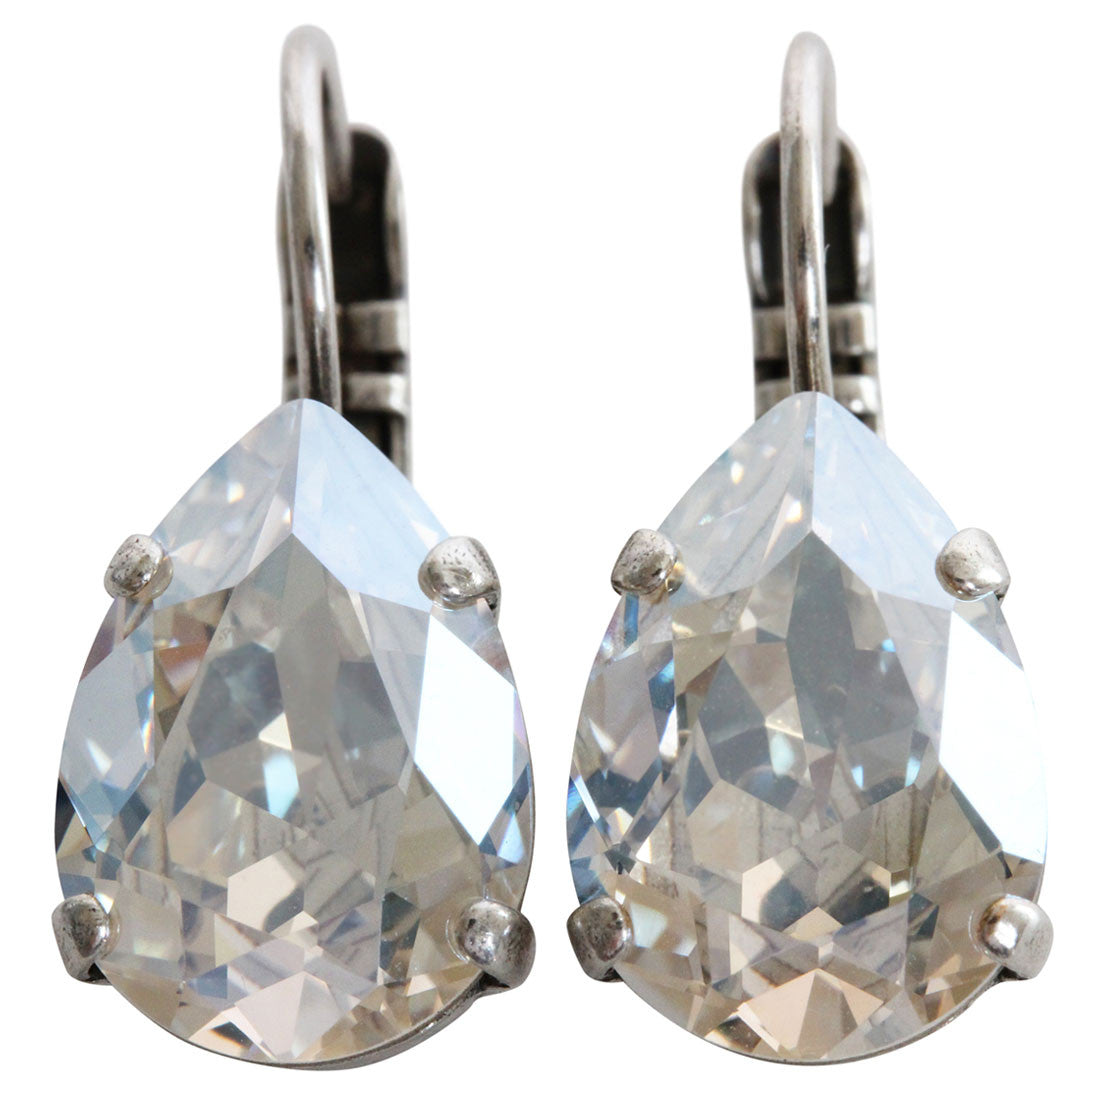 Mariana Silver Plated Teardrop Swarovksi Crystal Earrings, Gardenia Moonlight 1032/1 001MOL